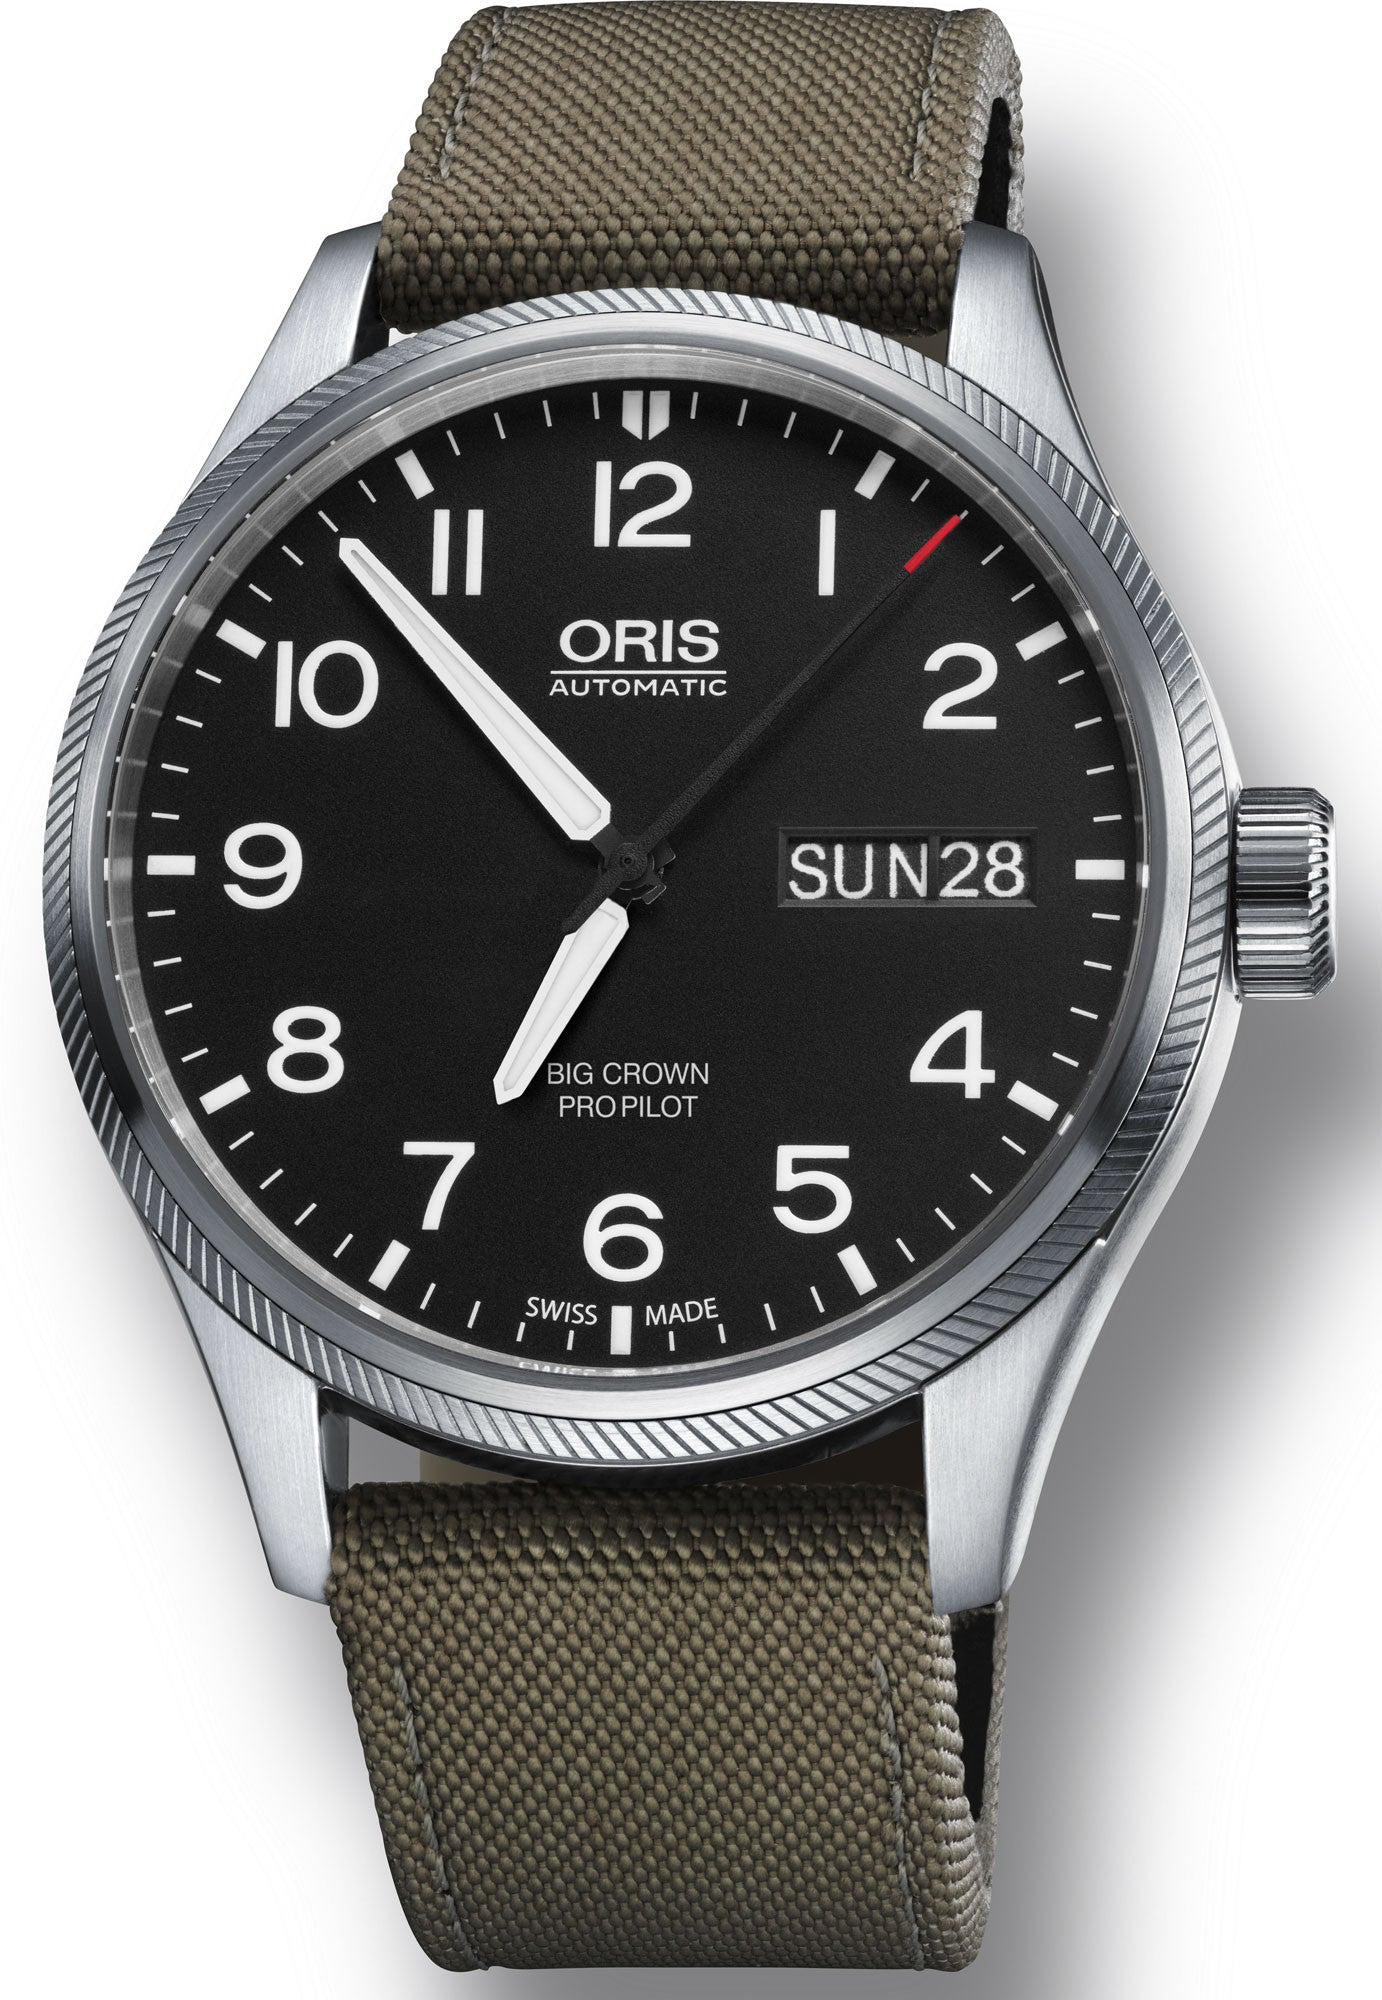 jewellers watches oris raffi header banner featured products